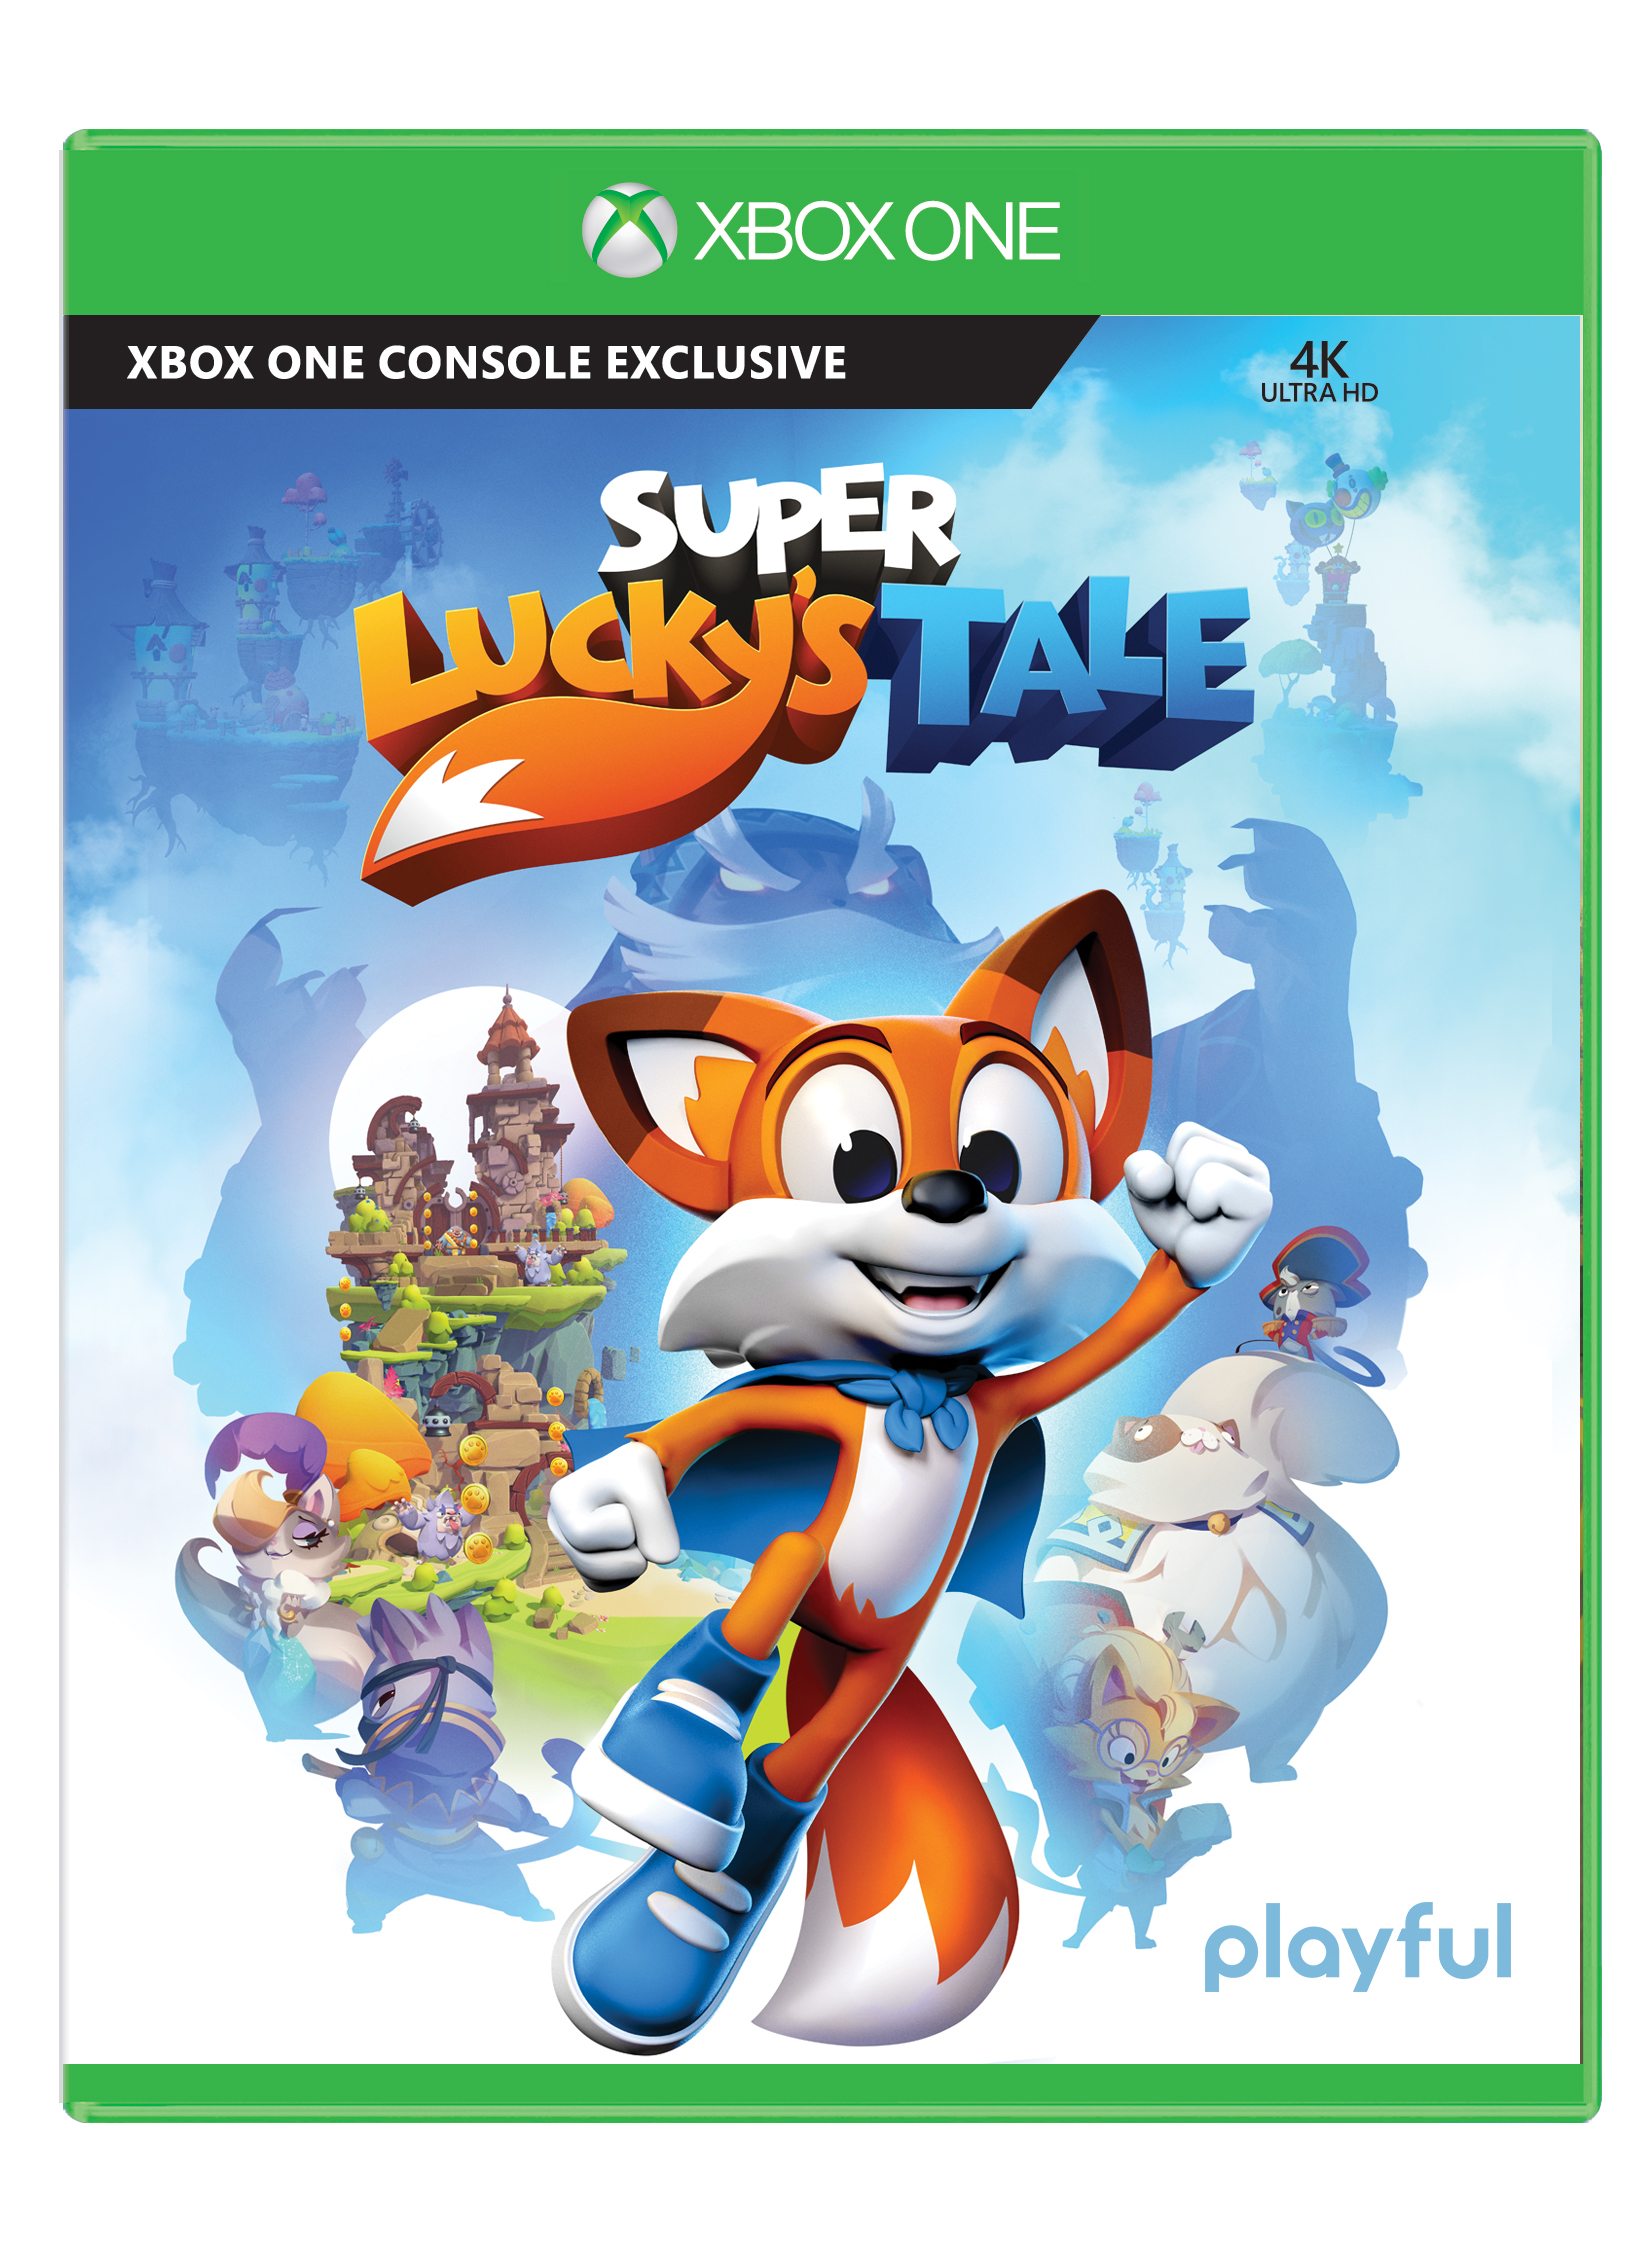 Super Lucky's Tale (Xbox) Review - The Only Title to Launch Alongside the Xbox One X